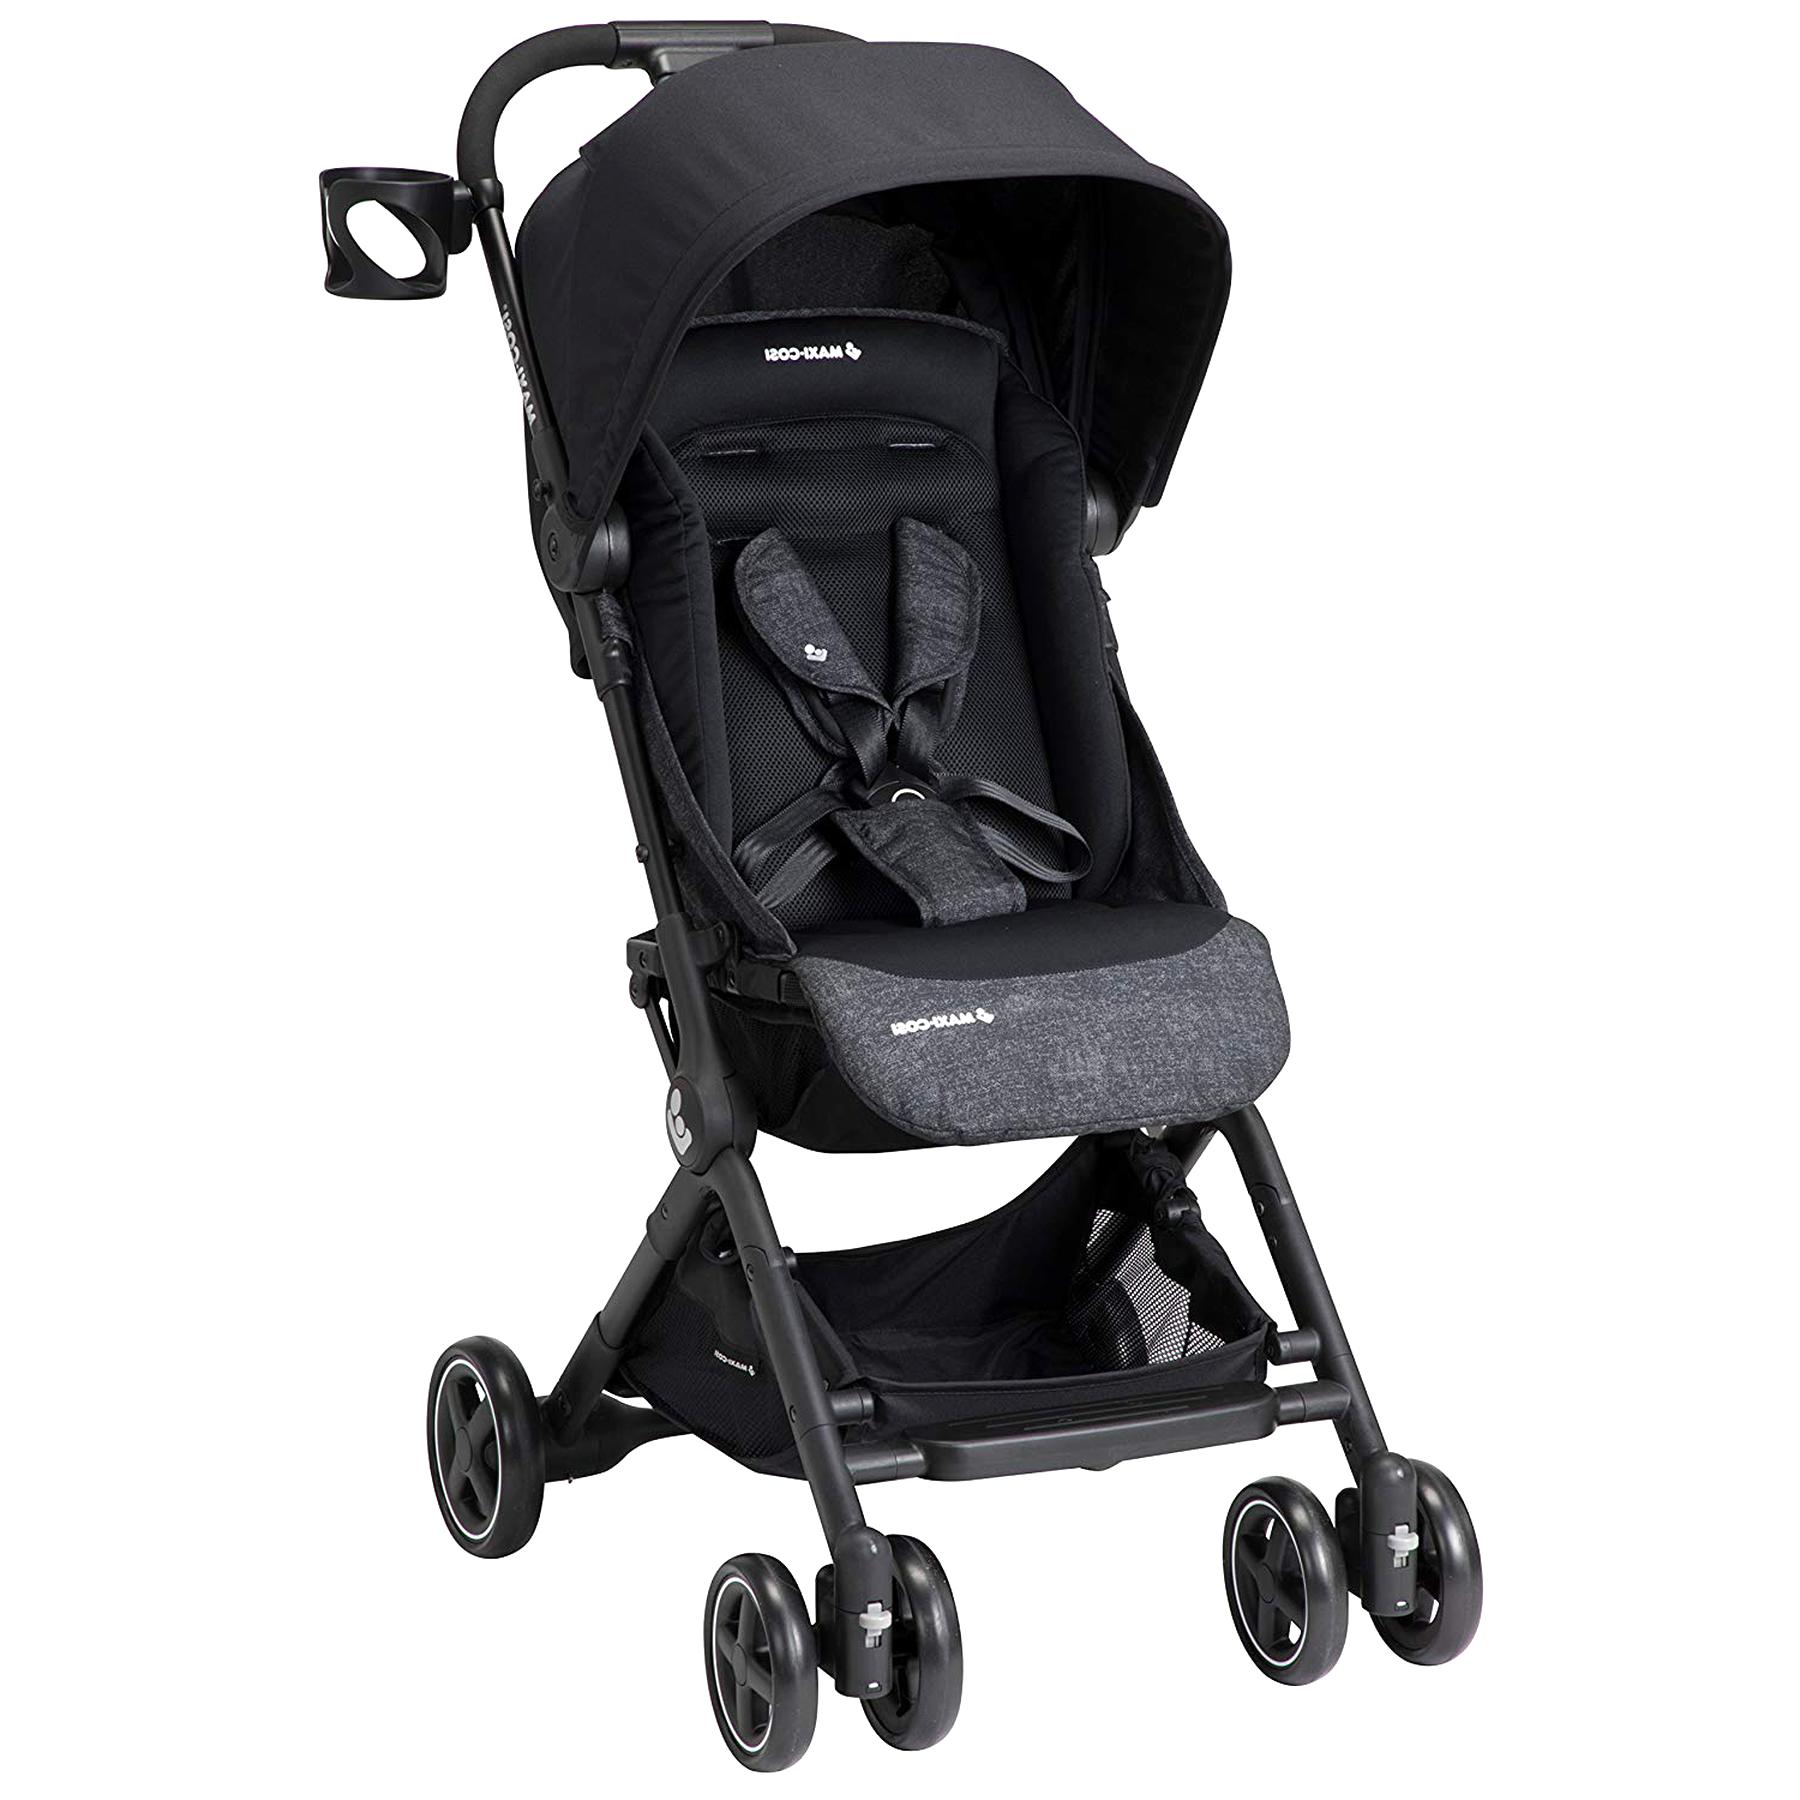 Maxi-cosi Adorra Travel System - Graphic Flower Maxi Cosi Stroller For Sale Only 2 Left At 70